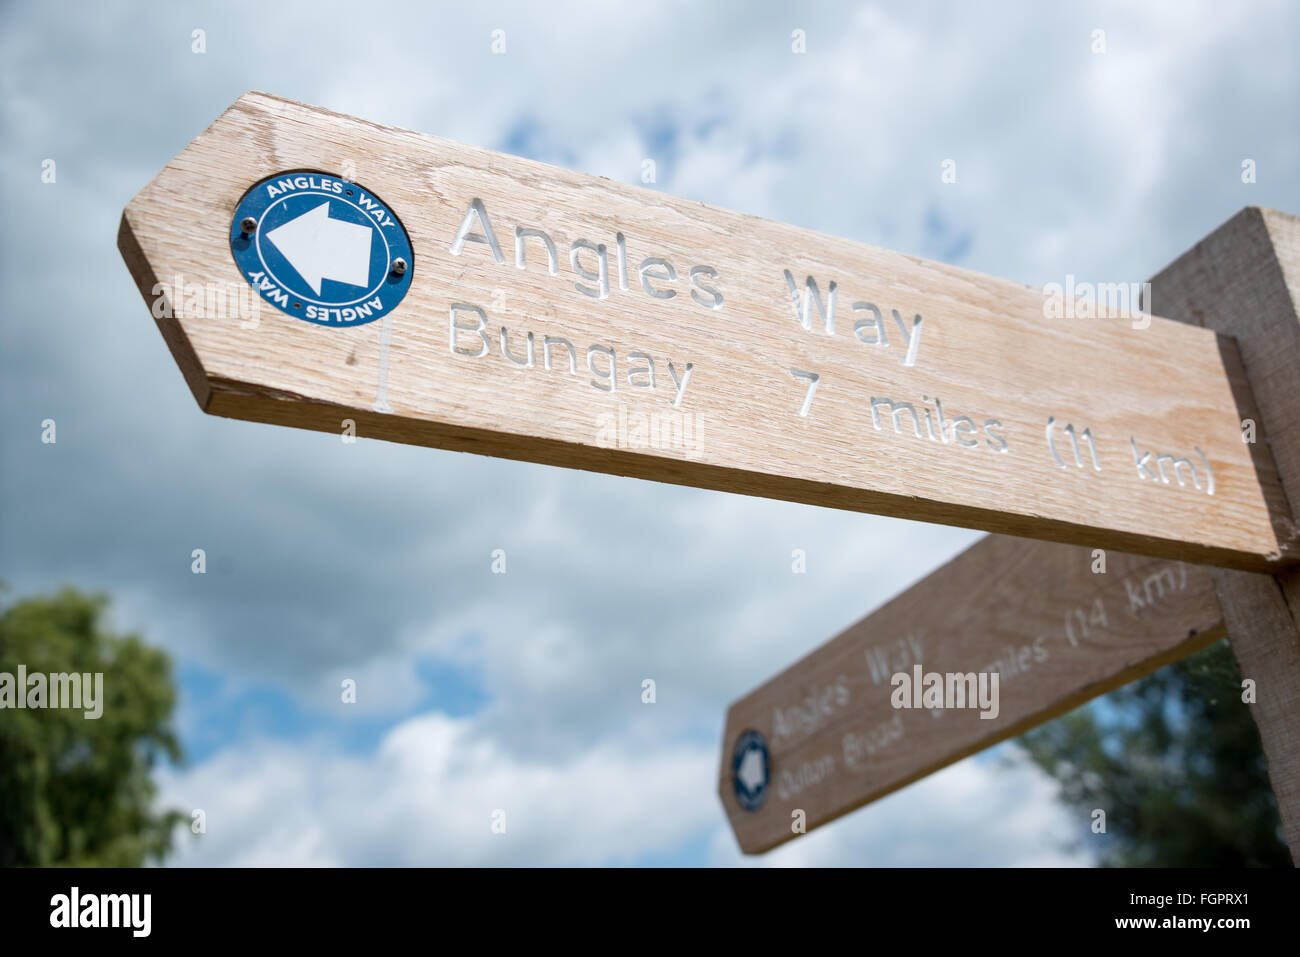 Angles Way sign, near Beccles in Suffolk - Stock Image